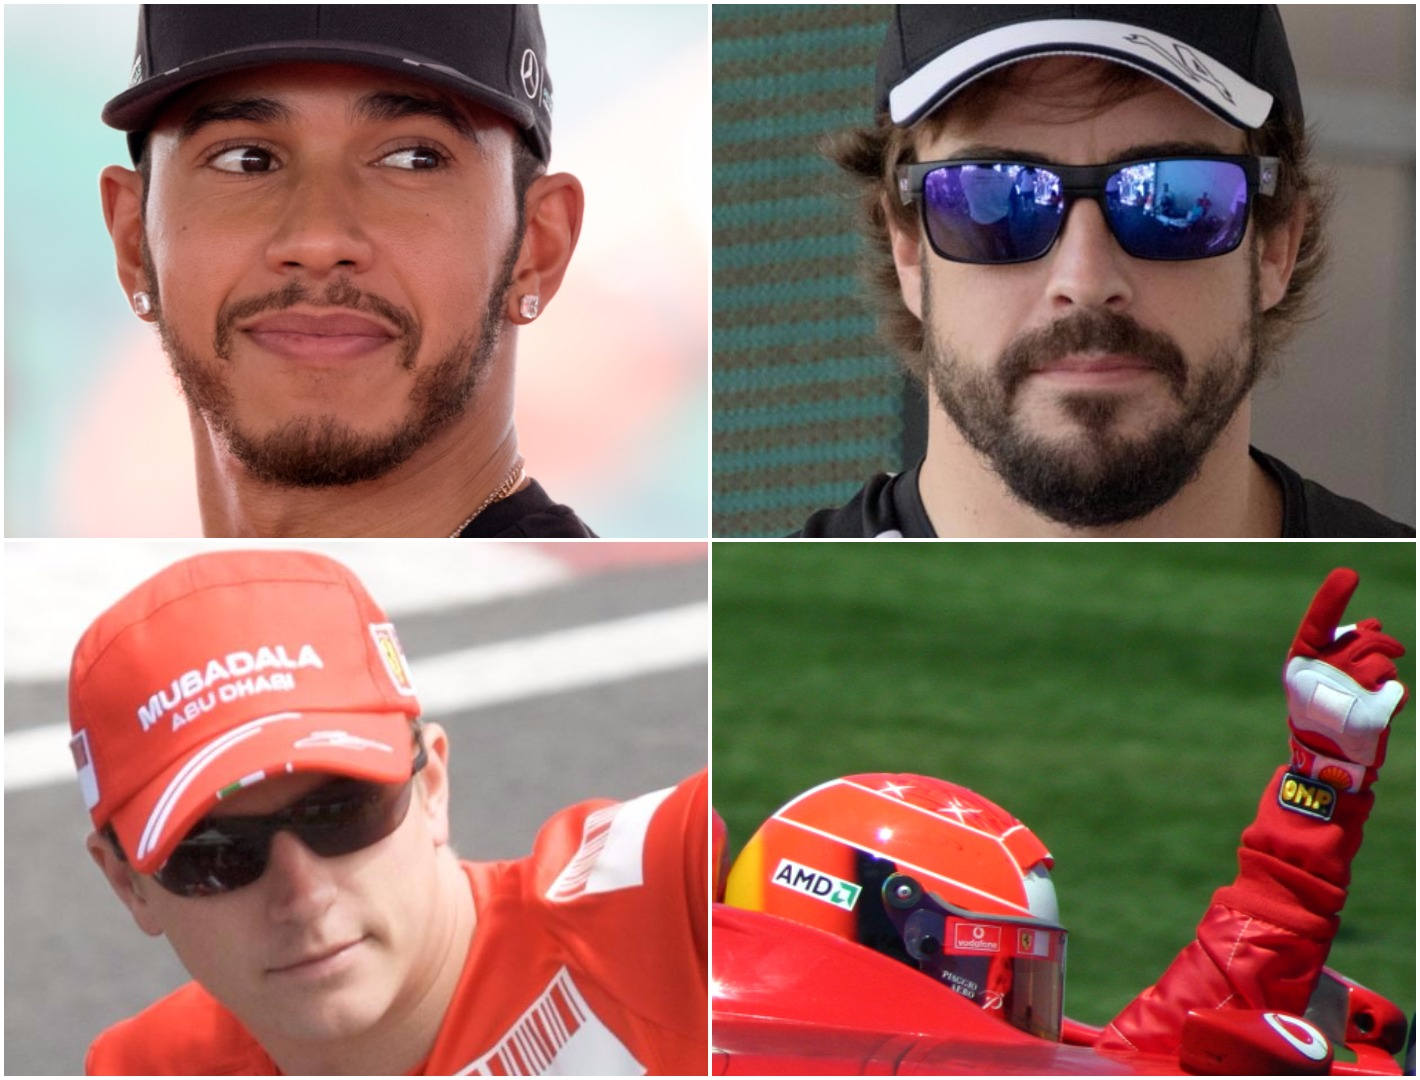 A four-way split image showing Lewis Hamilton, Fernando Alonso, Michael Schumacher and Kimi Raikkonen - Credit: Wikimedia Commons (Morio, Mark McArdle, Rick Dikeman)